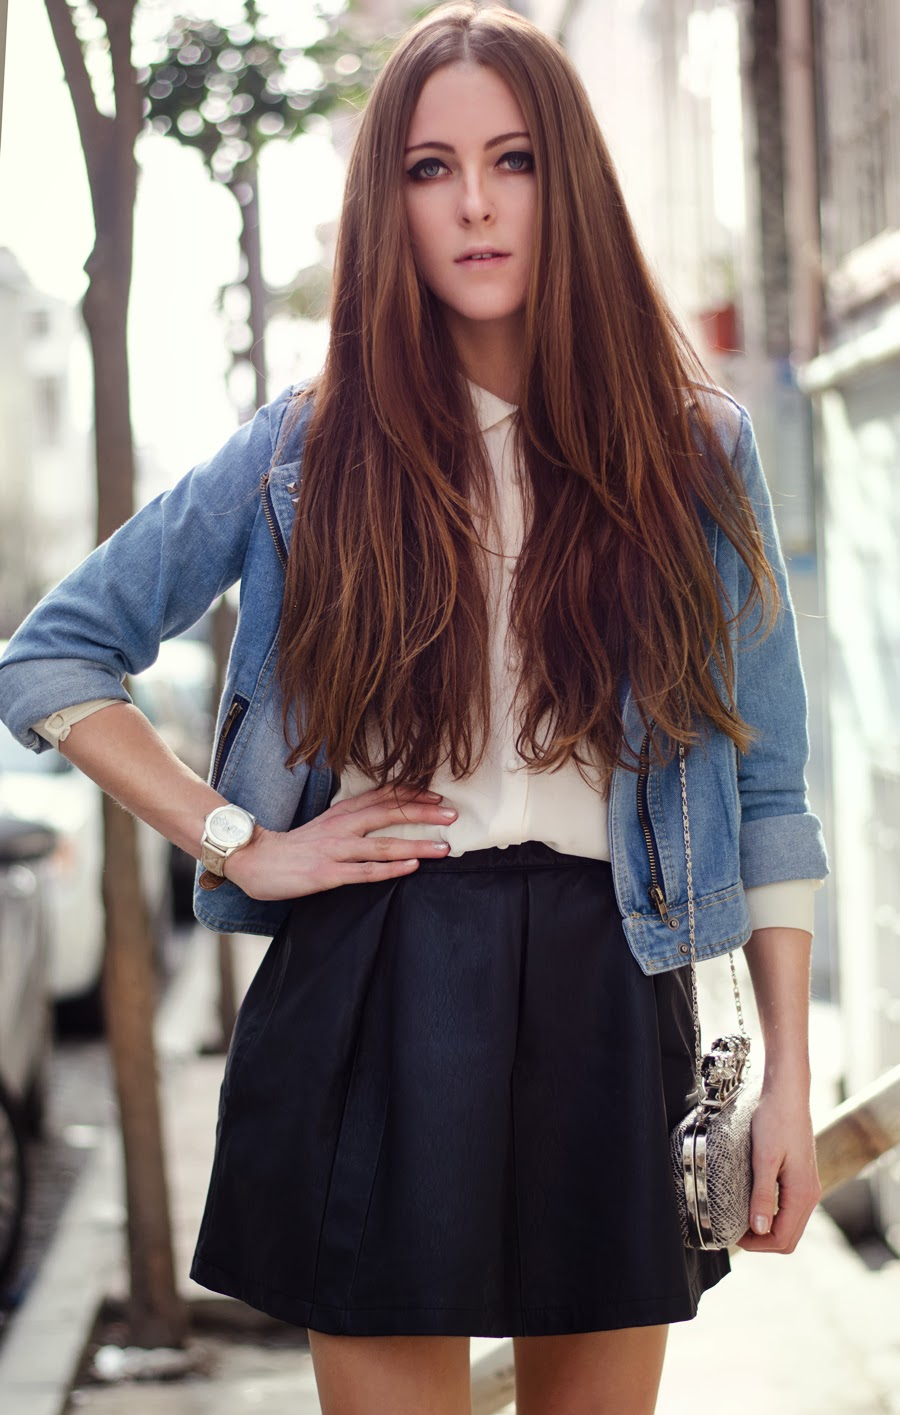 fashion blogger istanbul, street style 2014, studded denim, denim jacket outfit, leather skirt outfit, mango heels, long hair,